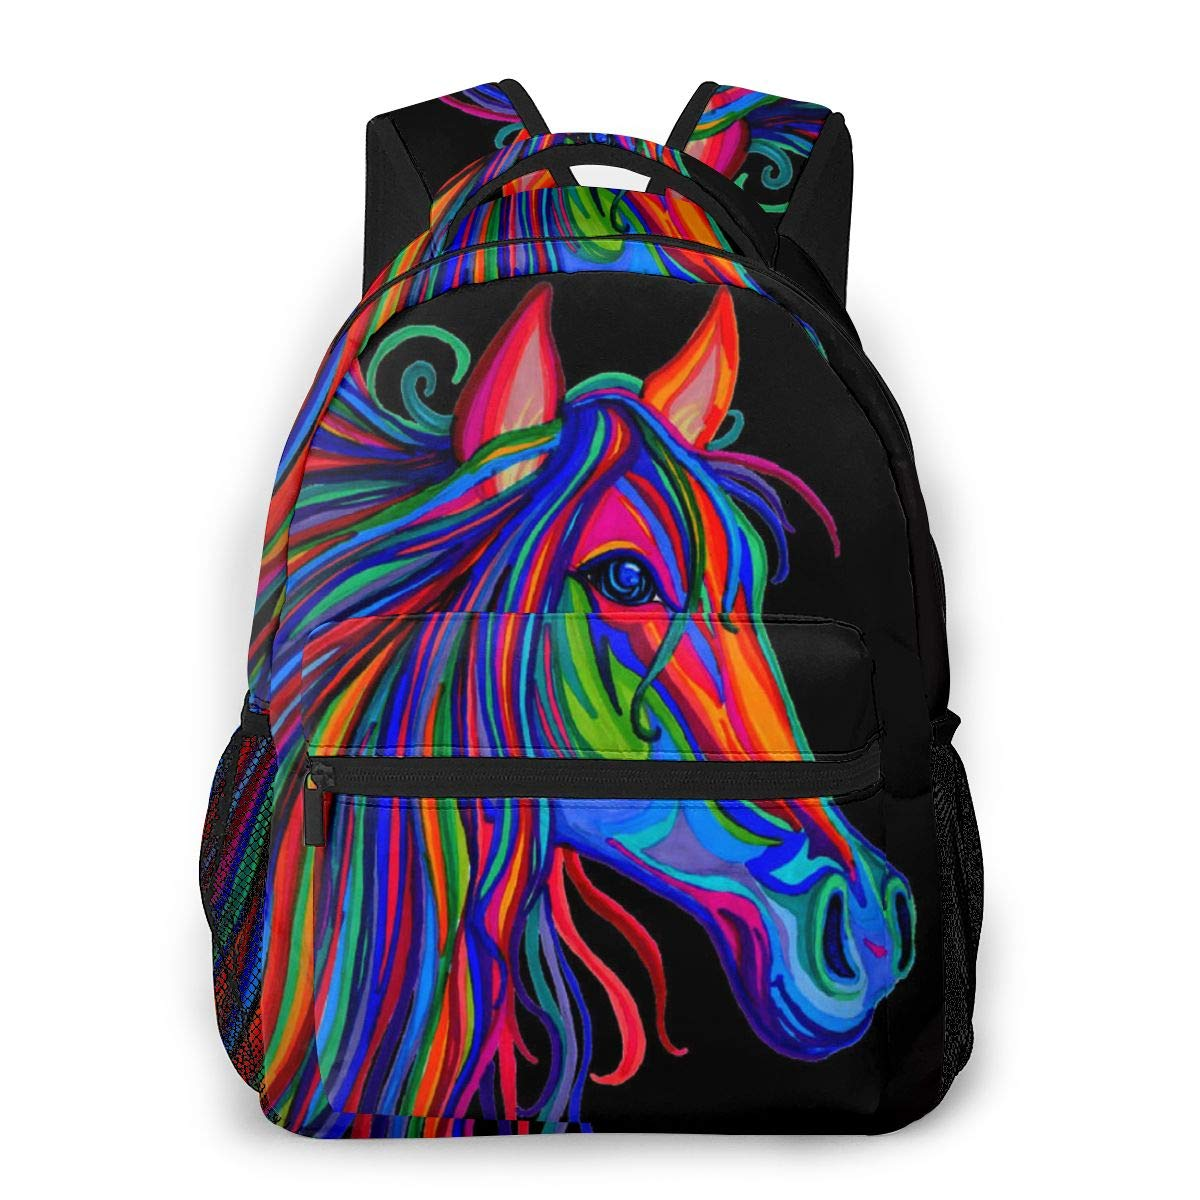 Fashion Daypack Large Capacity Anti-Theft Multipurpose Carry-On Bag Backpack for Sports Picnic Bicycle – Rainbow Wild Horse Head, Camping Outdoor Backpack